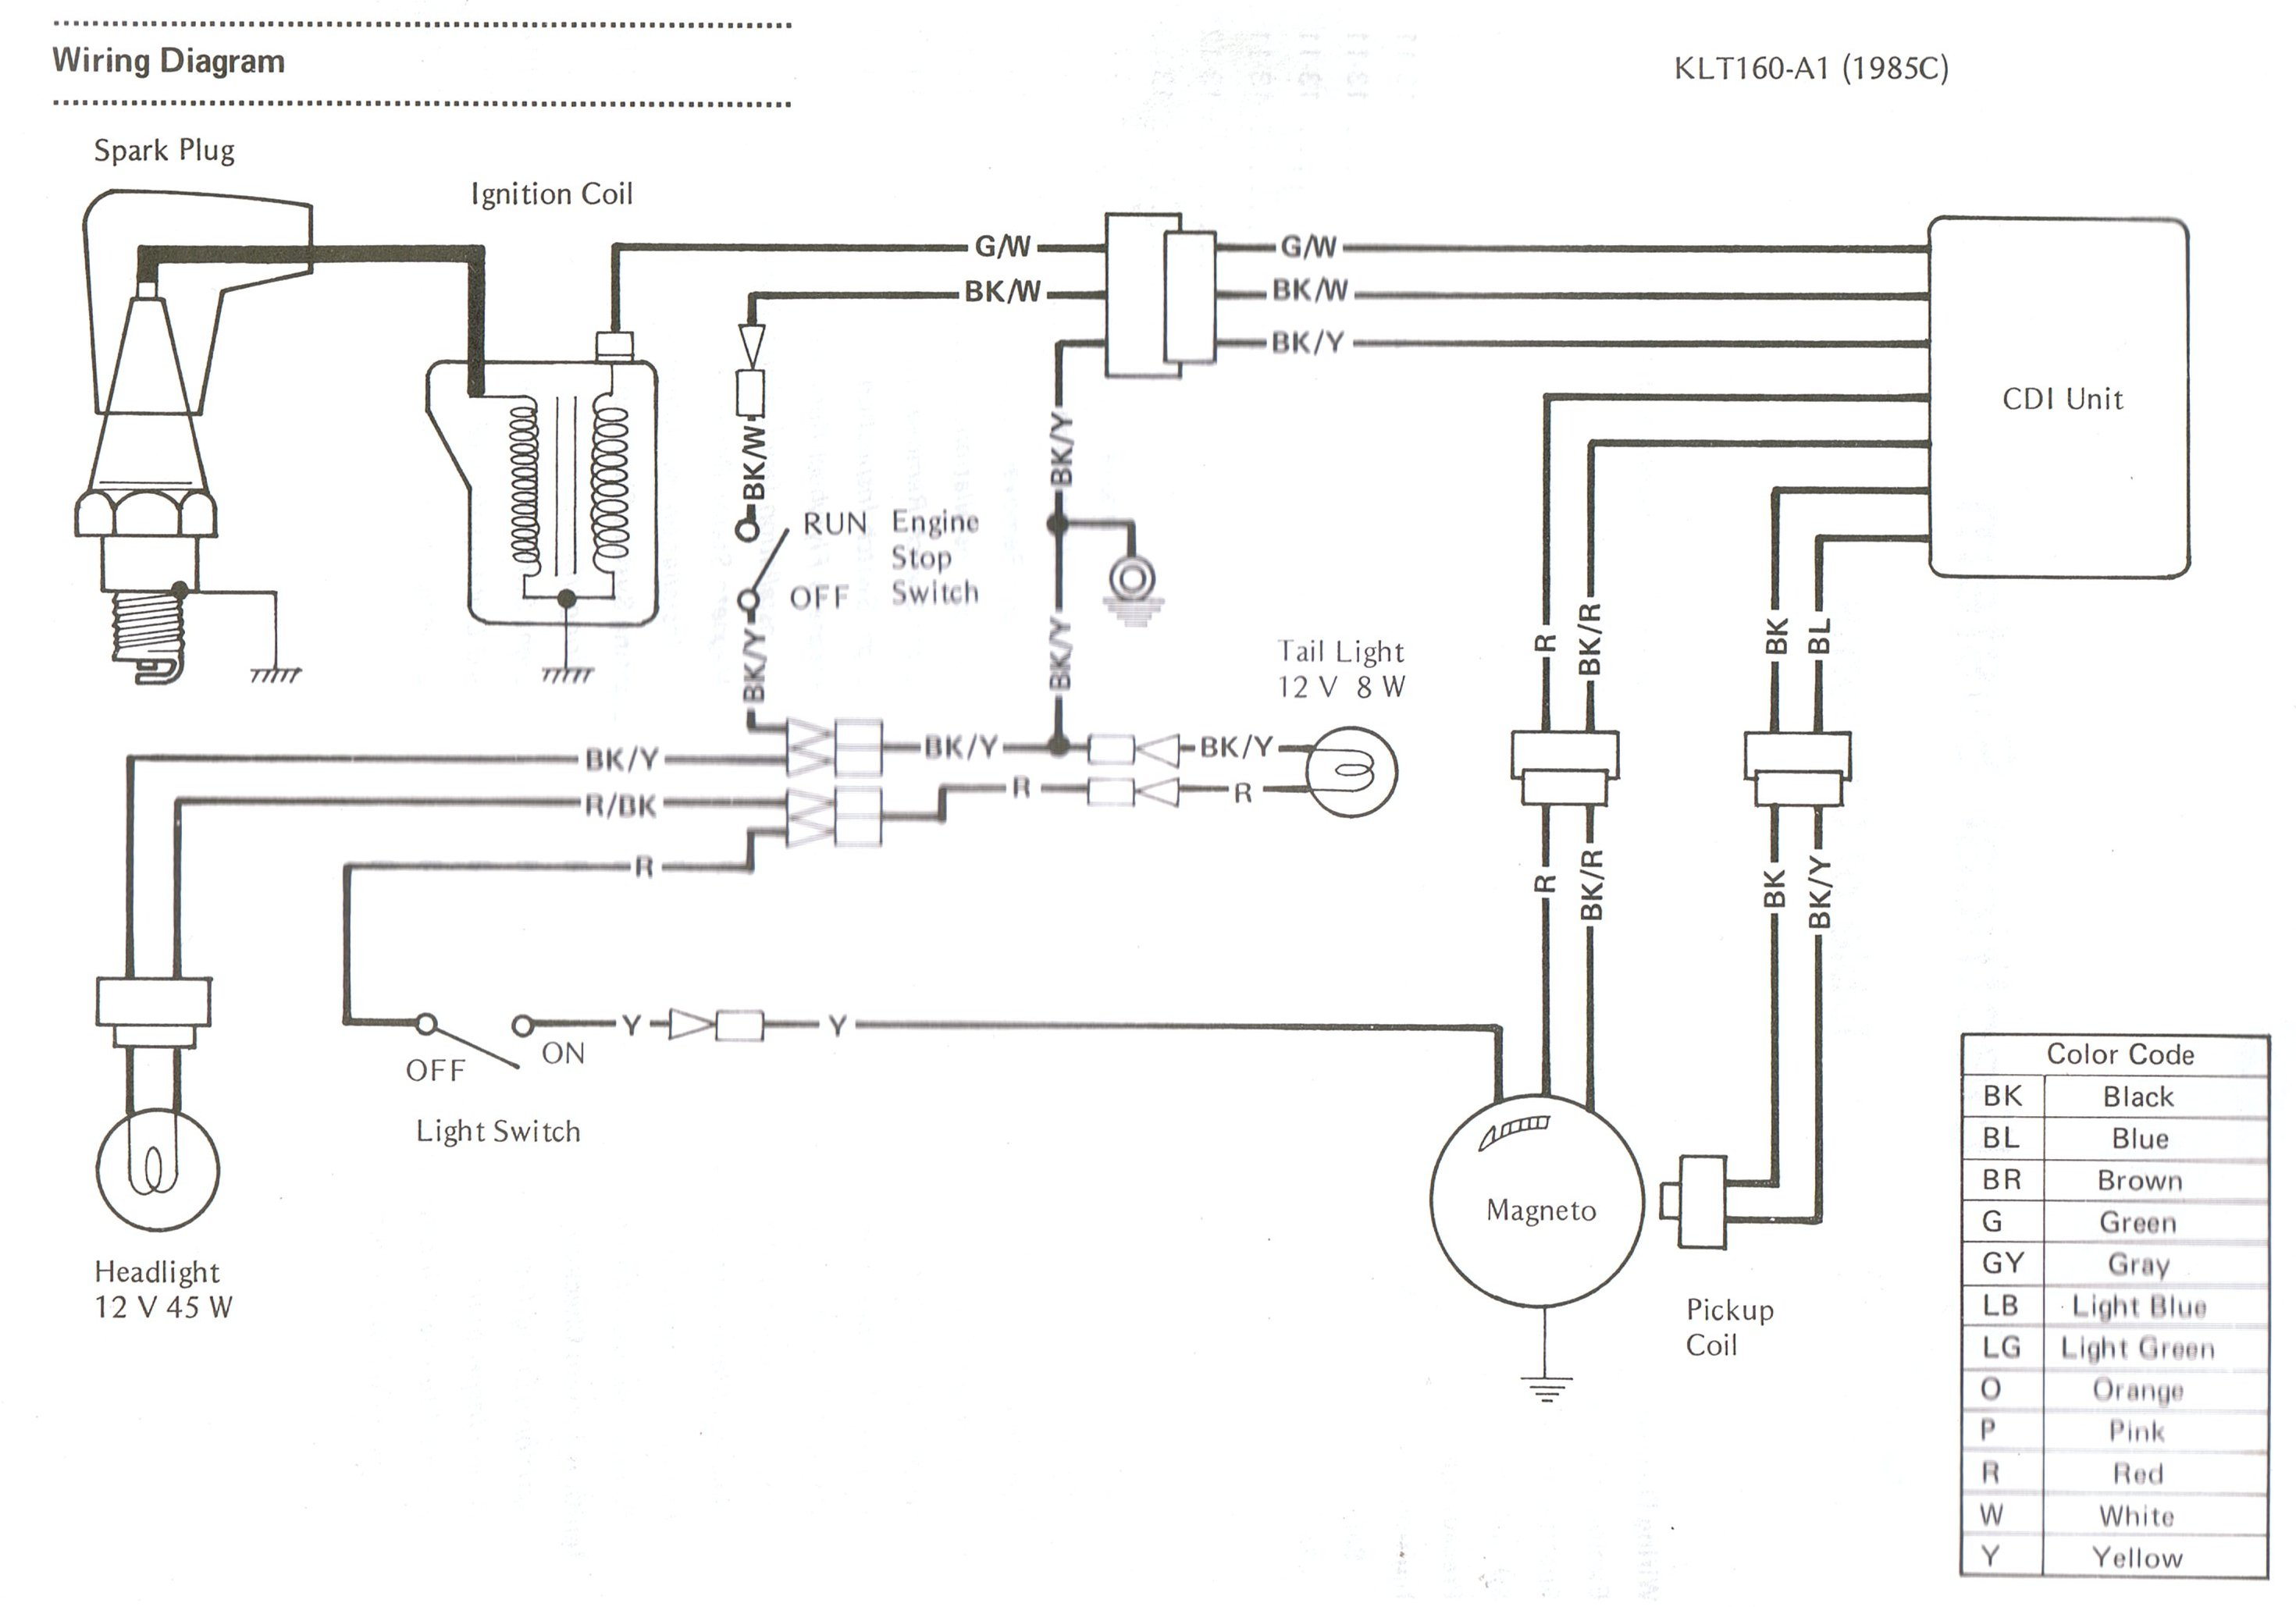 KLT160A1x85 3 wheeler world tech help kawasaki wiring diagrams 2006 ninja 250 wiring diagram at reclaimingppi.co